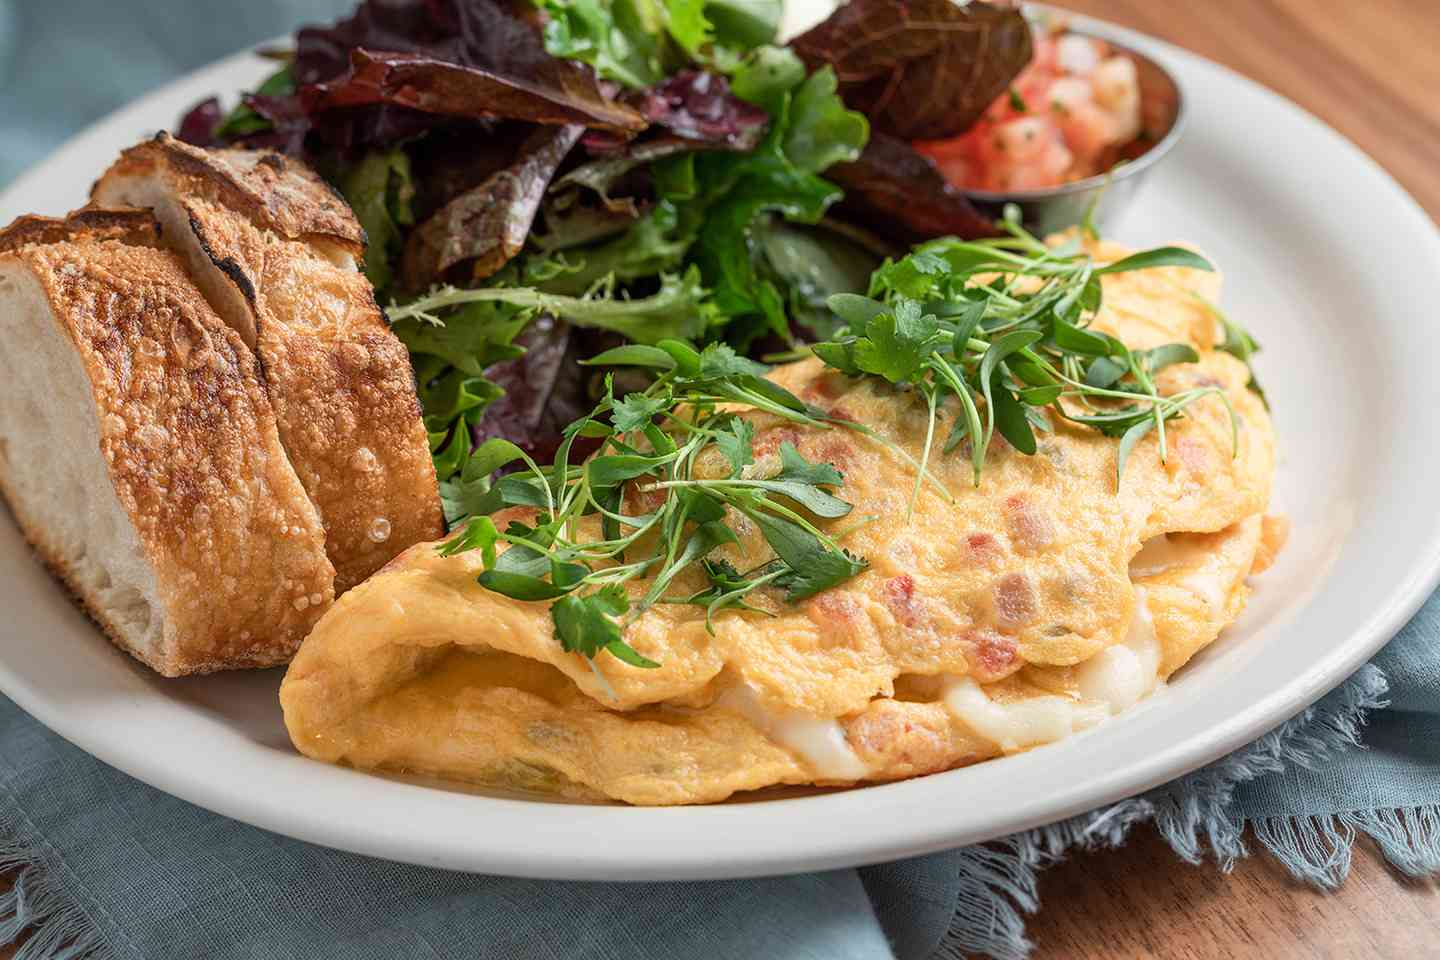 The Mexican Omelet